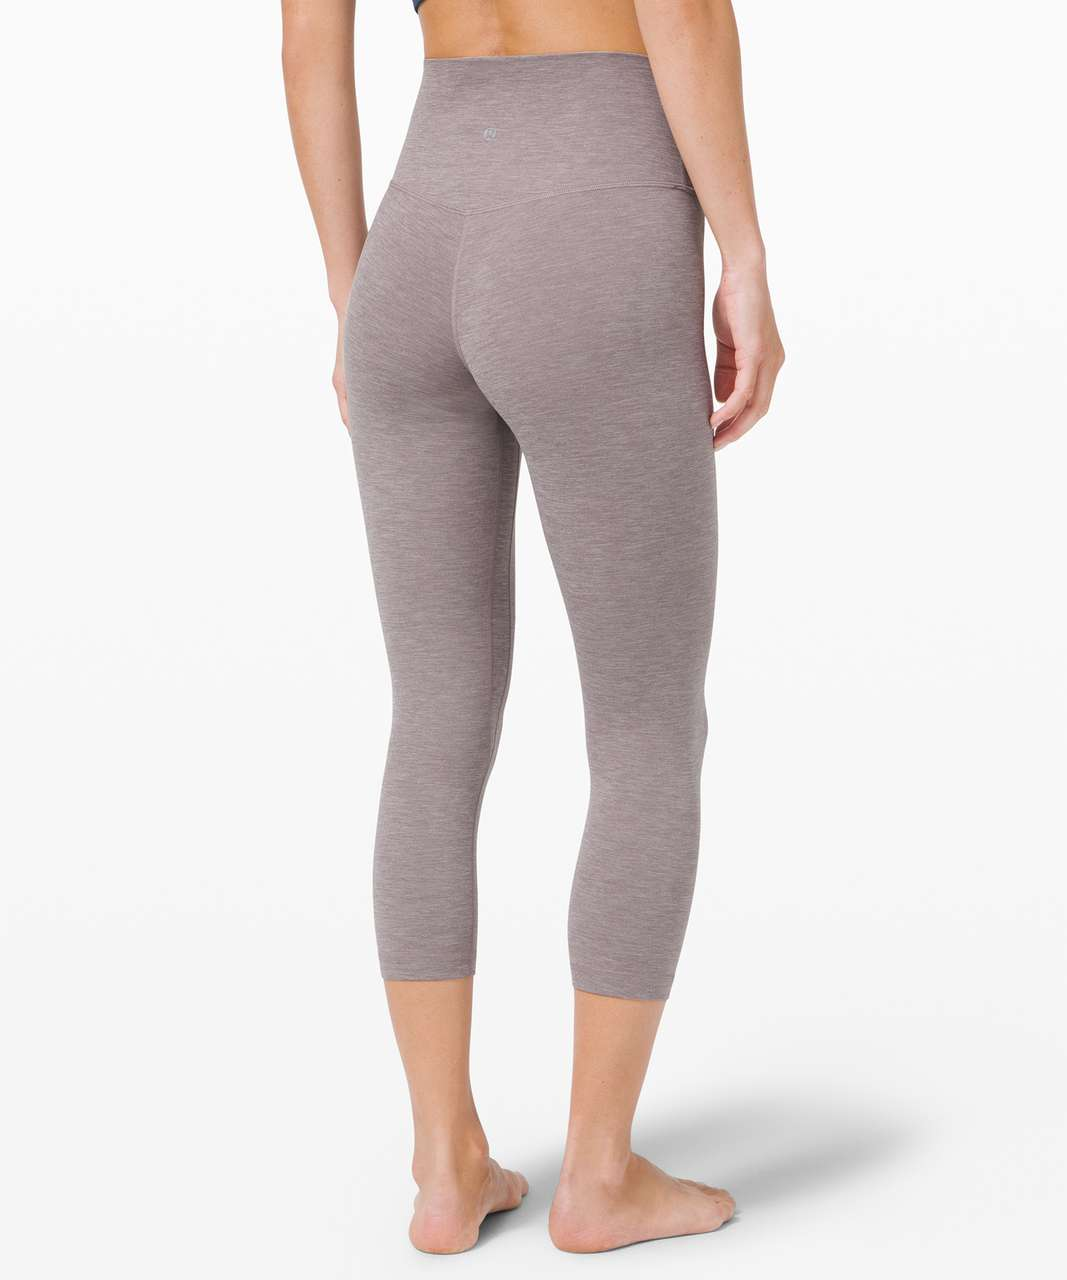 "Lululemon Align Crop *21"" - Heathered Lunar Rock"